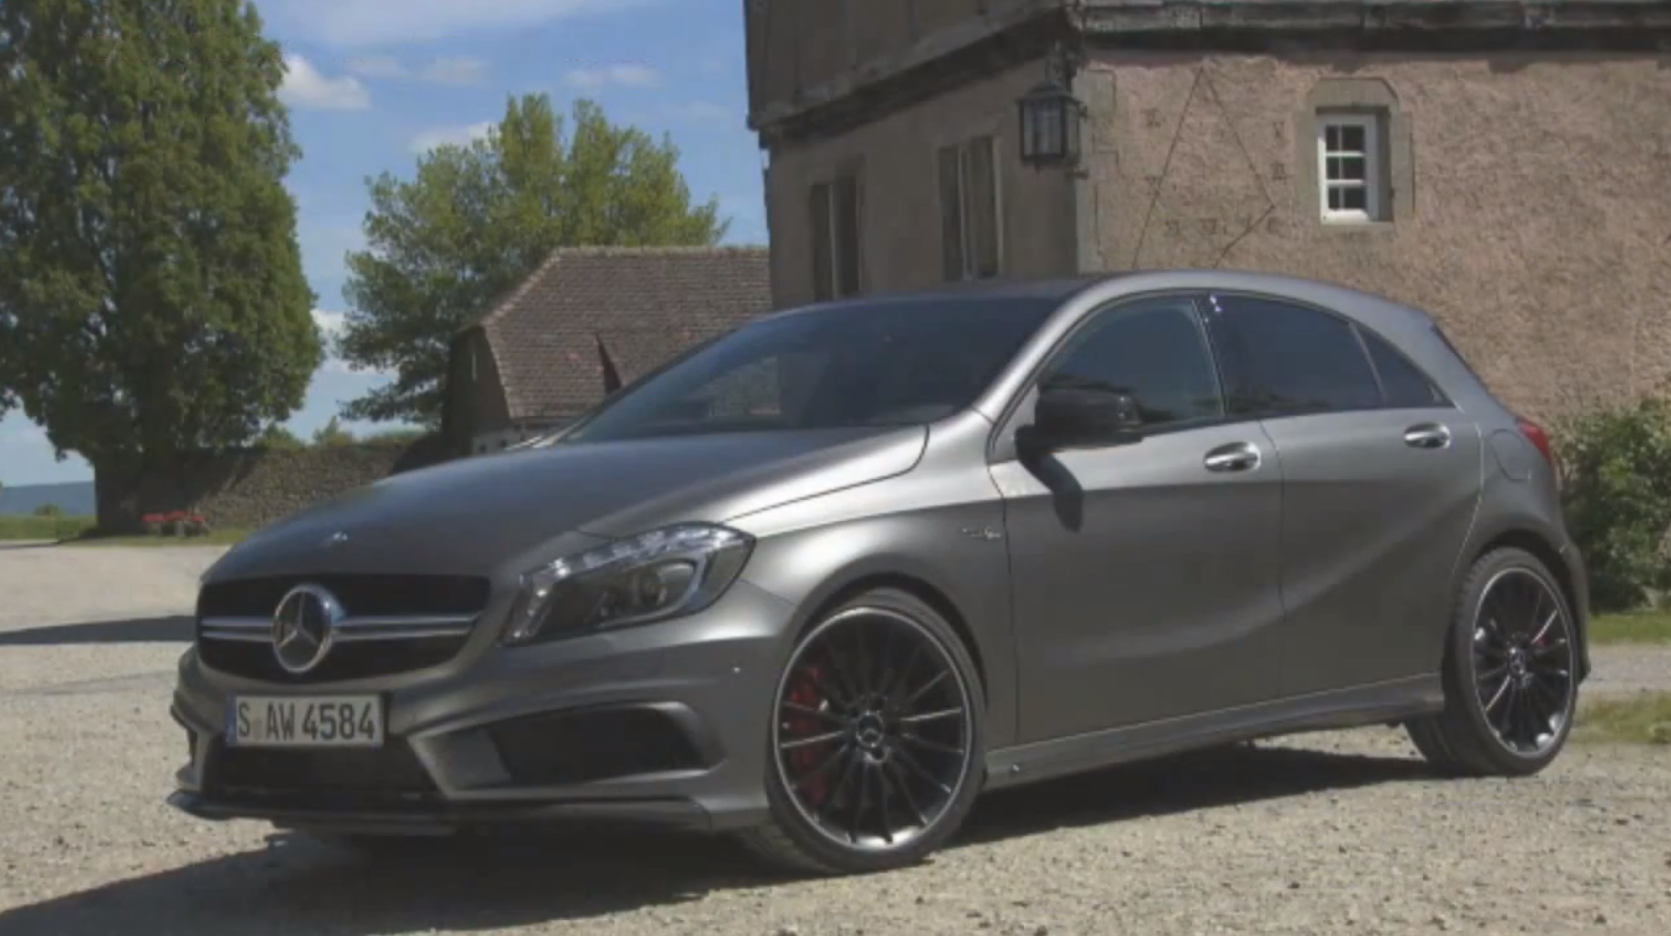 mercedes benz a 45 amg tested by vadimauto autoevolution. Black Bedroom Furniture Sets. Home Design Ideas